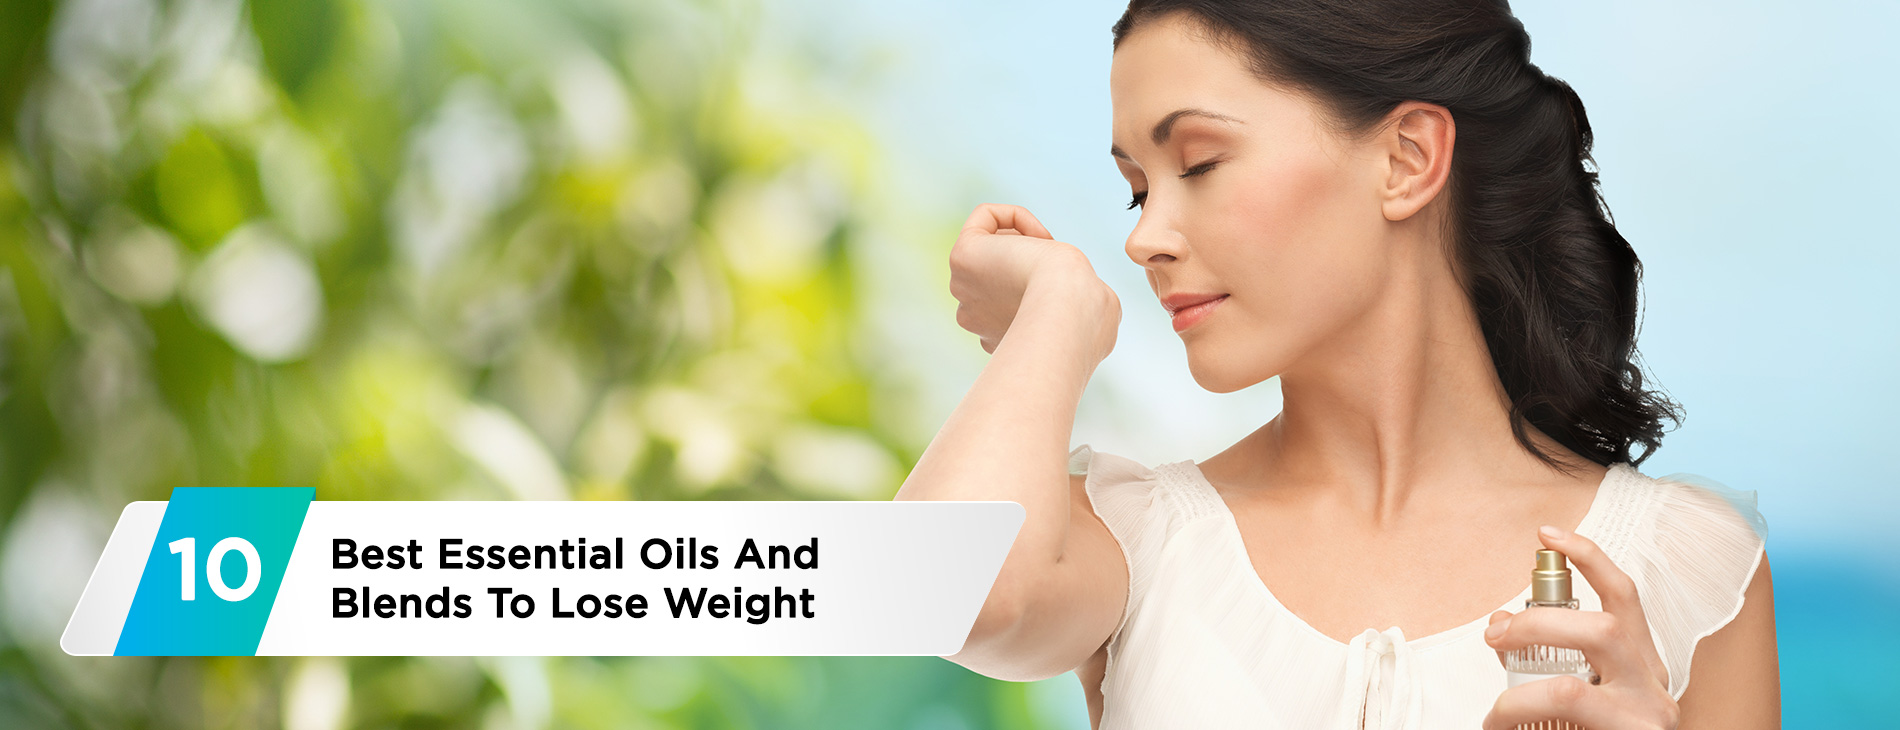 10-Best-Essential-Oils-And-Blends-To-Lose-Weight